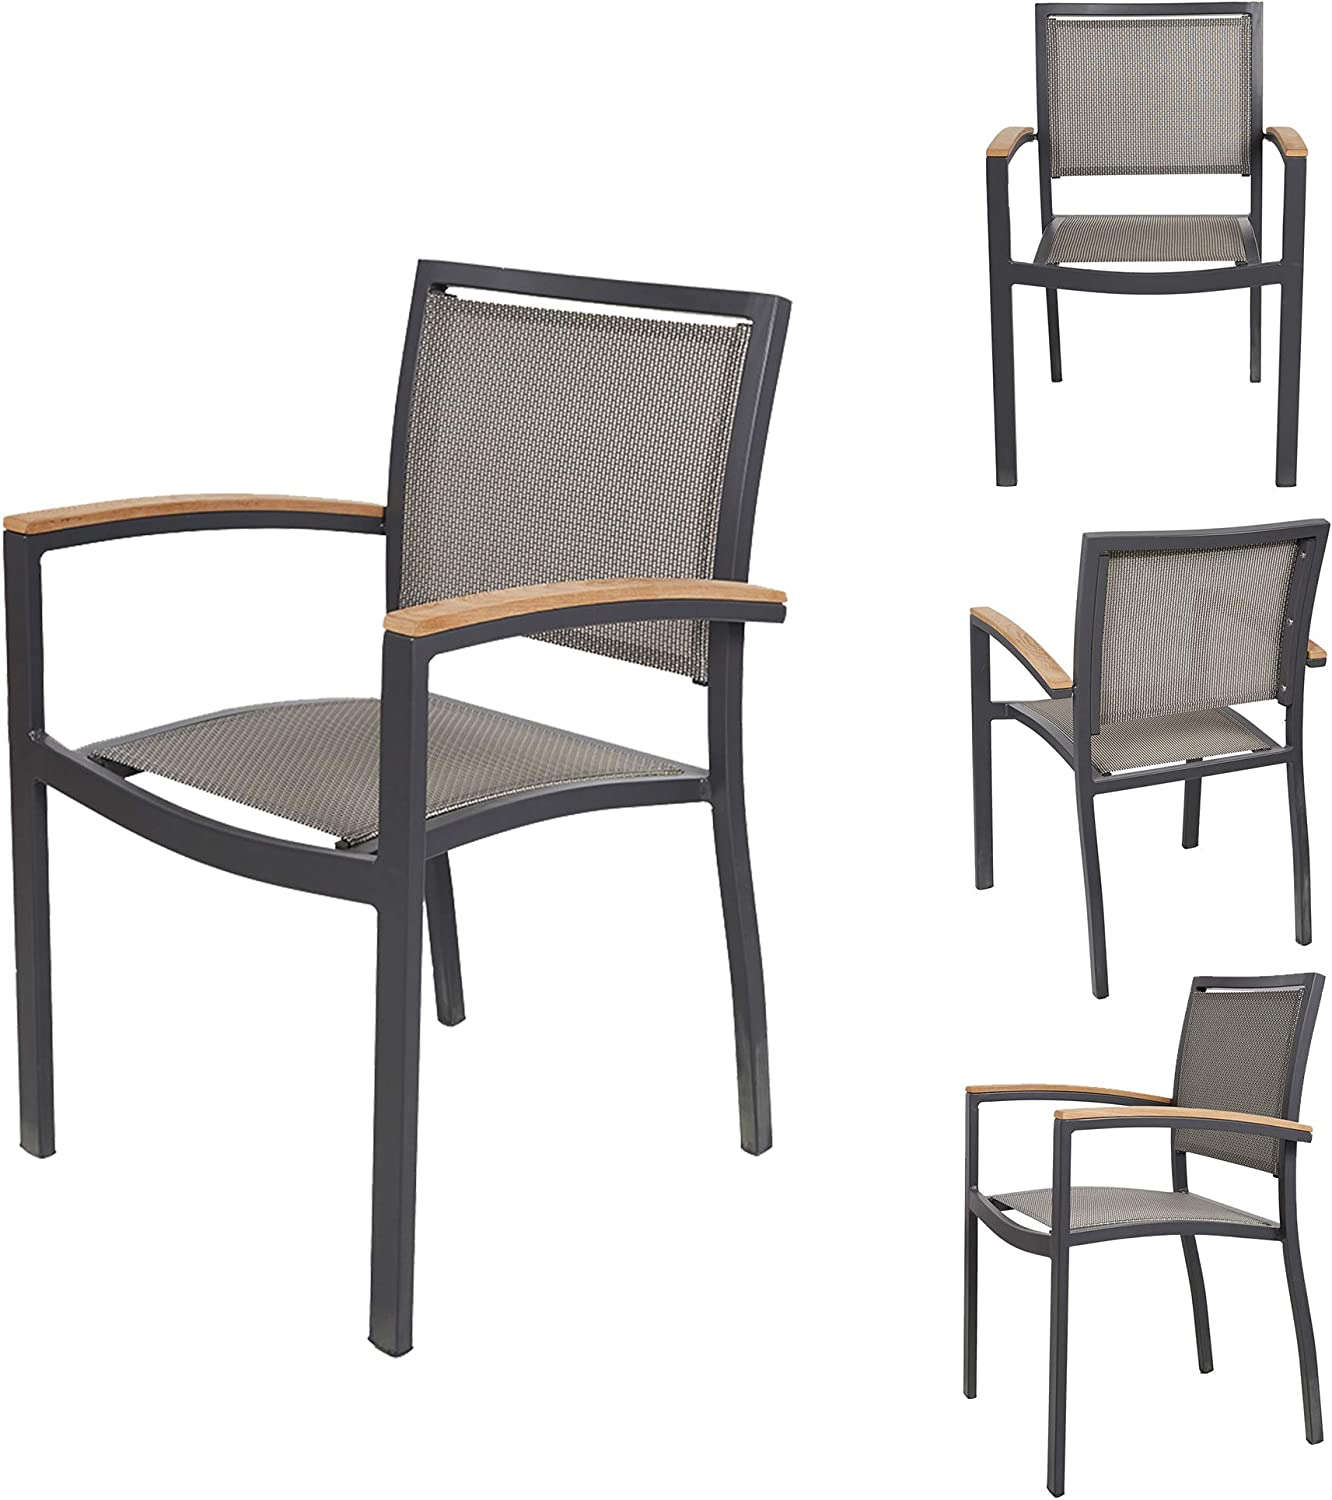 TRY & DO Patio Dining Chairs Set of 4,Outdoor Stackable Dining Chairs with Armrest Textilene Mesh Fabric Aluminum Frame Patio Furniture Sets for Garden, Balcony, Lawn and Indoors